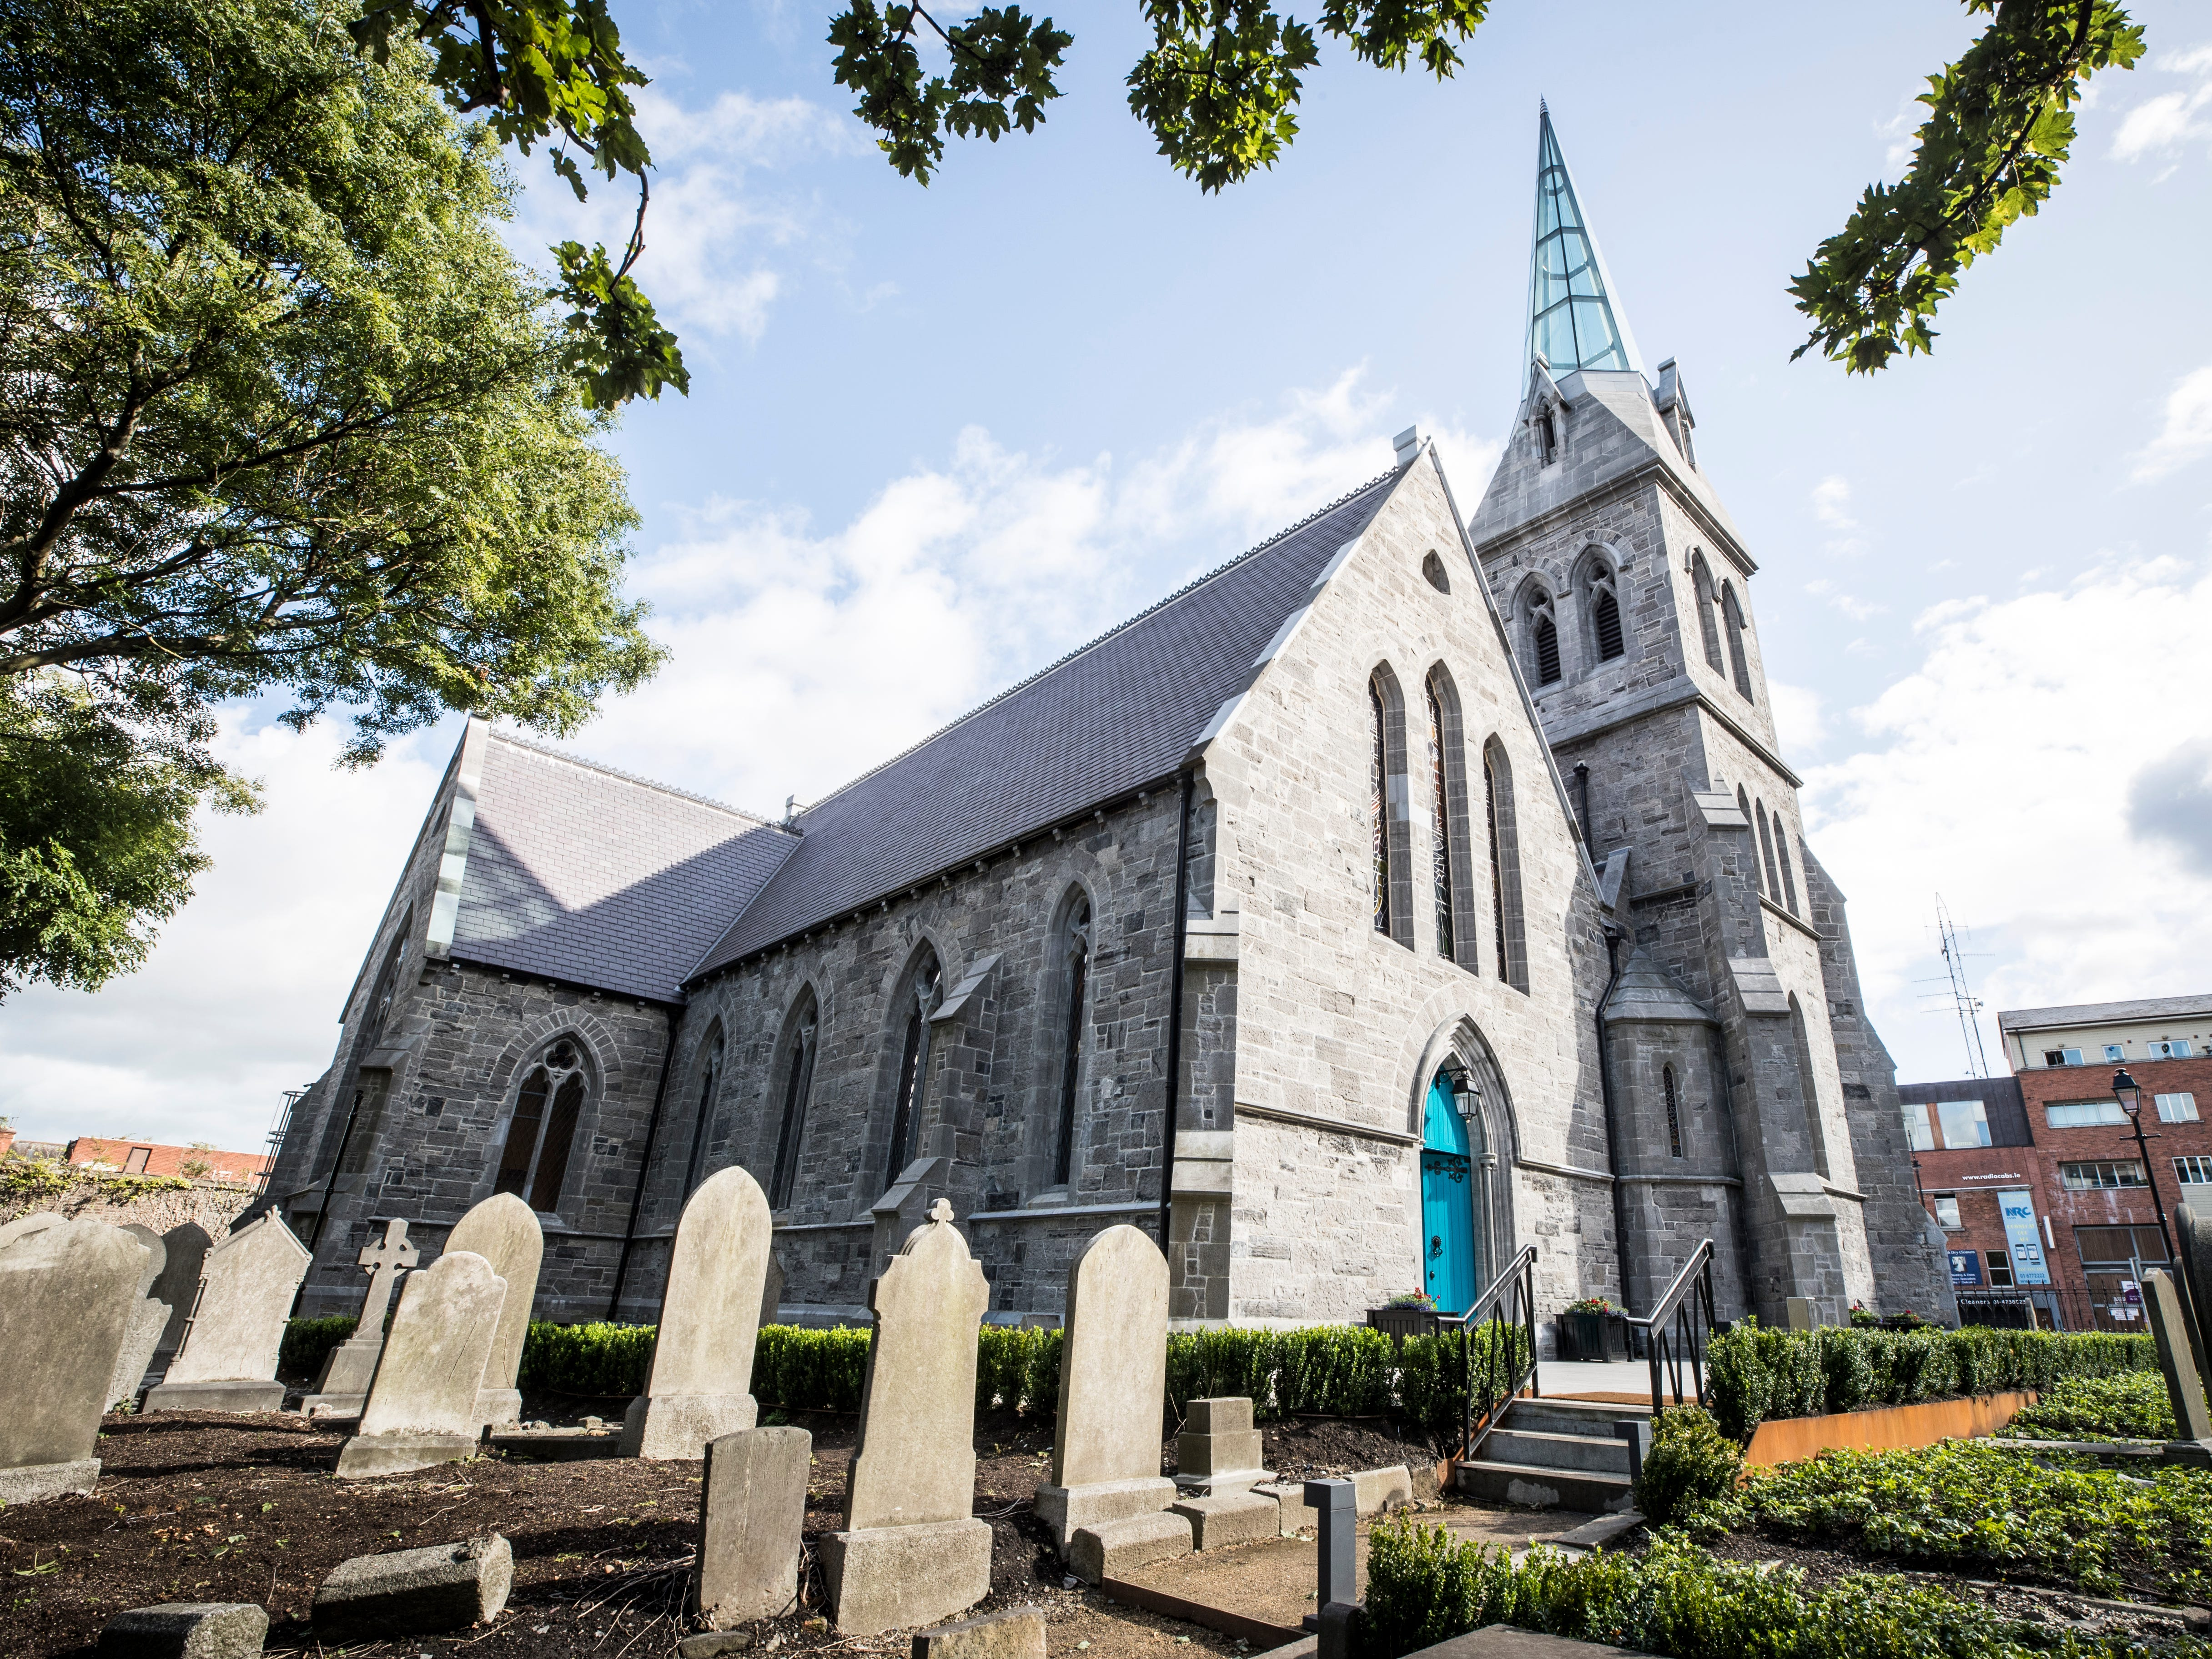 """Teeling has been joined in Dublin by the likes of Pearse Lyons Distillery, which opened in 2017. """"[The late] Dr. Lyons was adamant about returning to his roots and honoring the dormant traditions of distilling of The Liberties, Dublin,"""" says Assistant General Manager Andrew Adamson. """"With the marriage of restoring the old church of St. James, that has long been woven into the fabric of the local community, he has succeeded in reinvigorating a part of the city's history that could have been lost forever."""""""